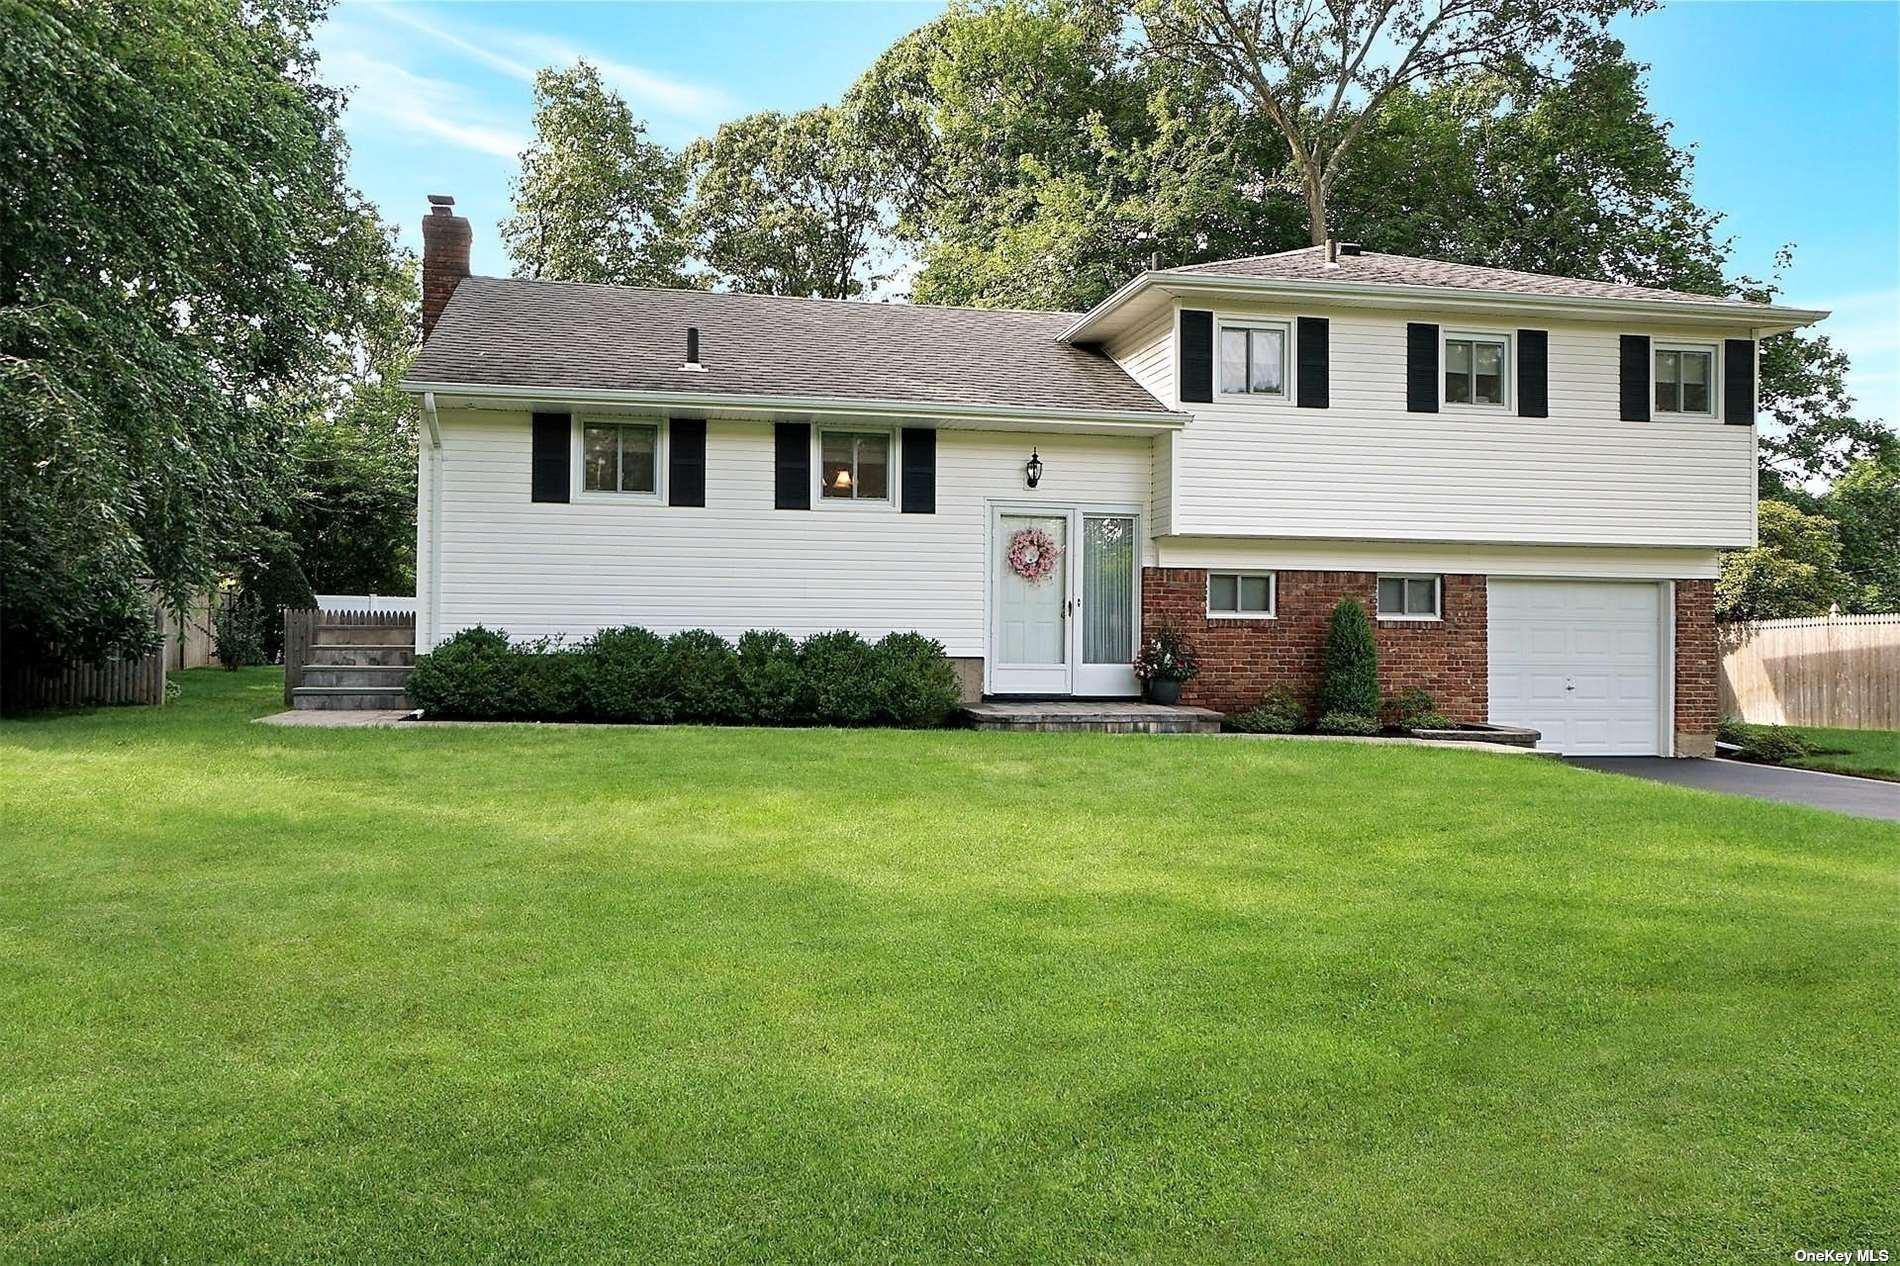 Pride of Ownership! Immaculate Split Level in Sought after Bird Section, Hardwood Flooring, Updated Windows, Siding and Roofing, Newer EIK with Granite/Stainless Appliances, Updated Baths, Newer Driveway and Paver Walks, Beautiful Flat and Usable Fenced Yard, Property Taxes with Basic NYS Star $8,458.84.